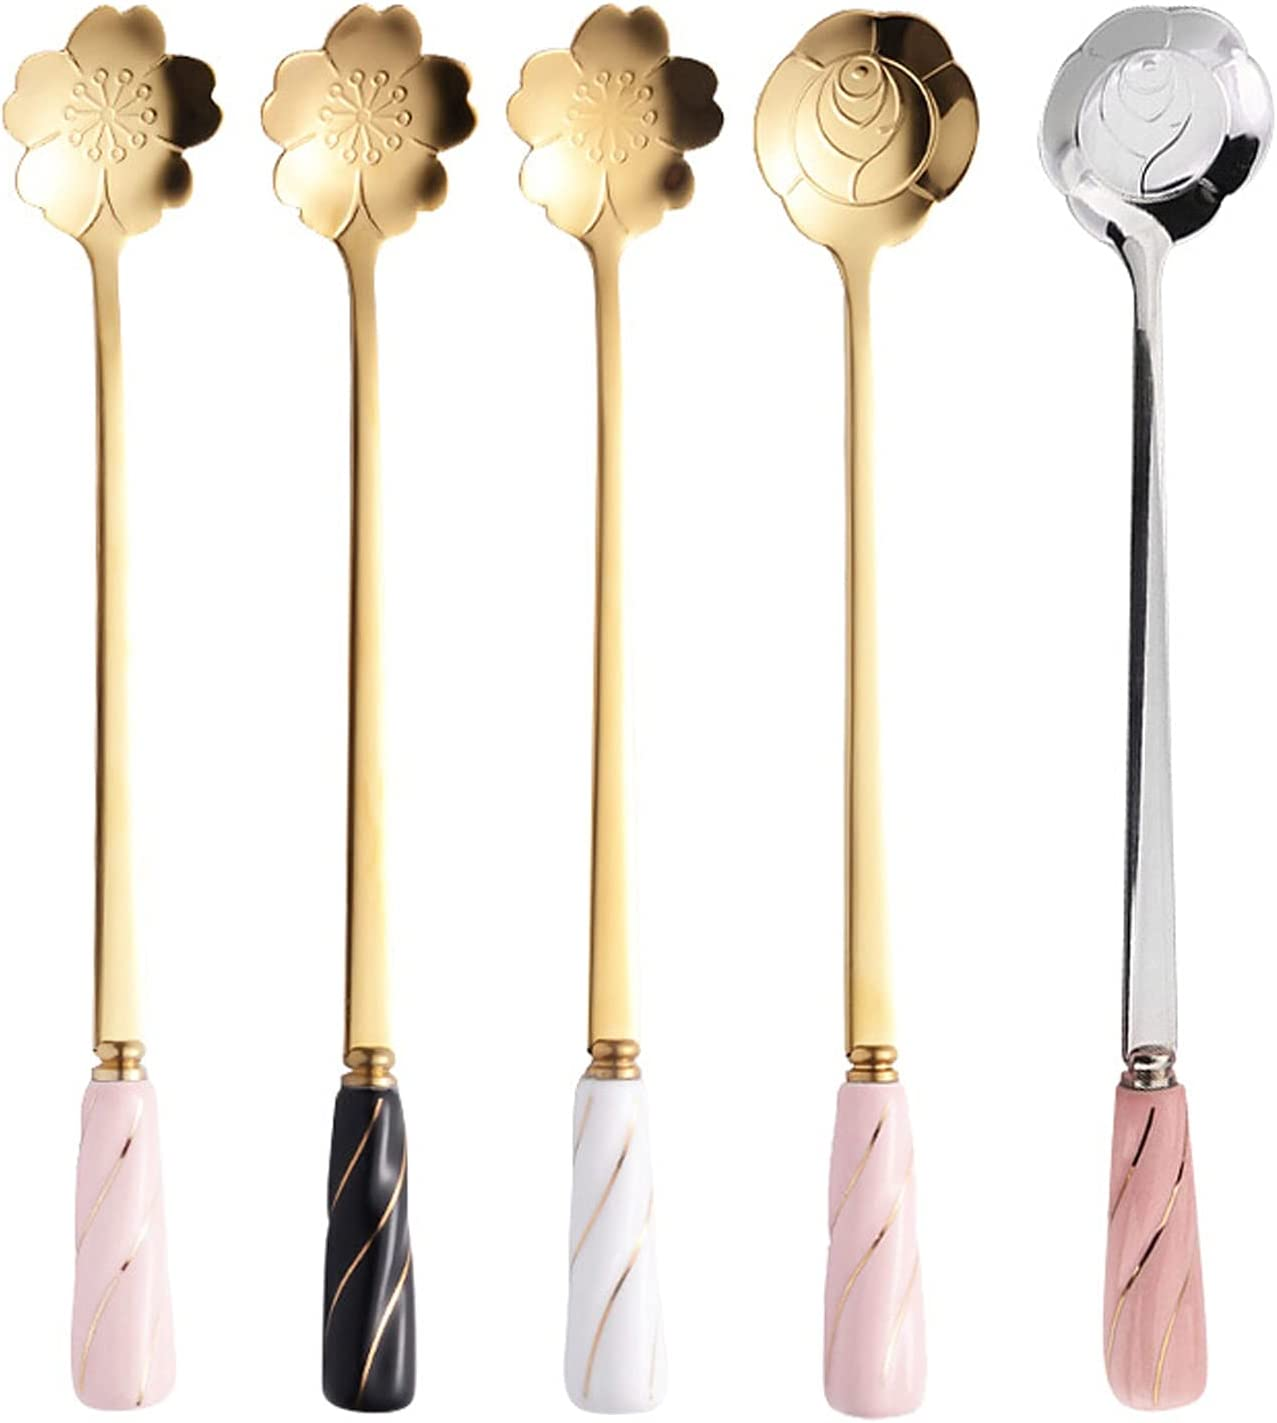 Cooking spoon Stainless Branded goods Minneapolis Mall Steel Flower-shaped Spoon Dessert